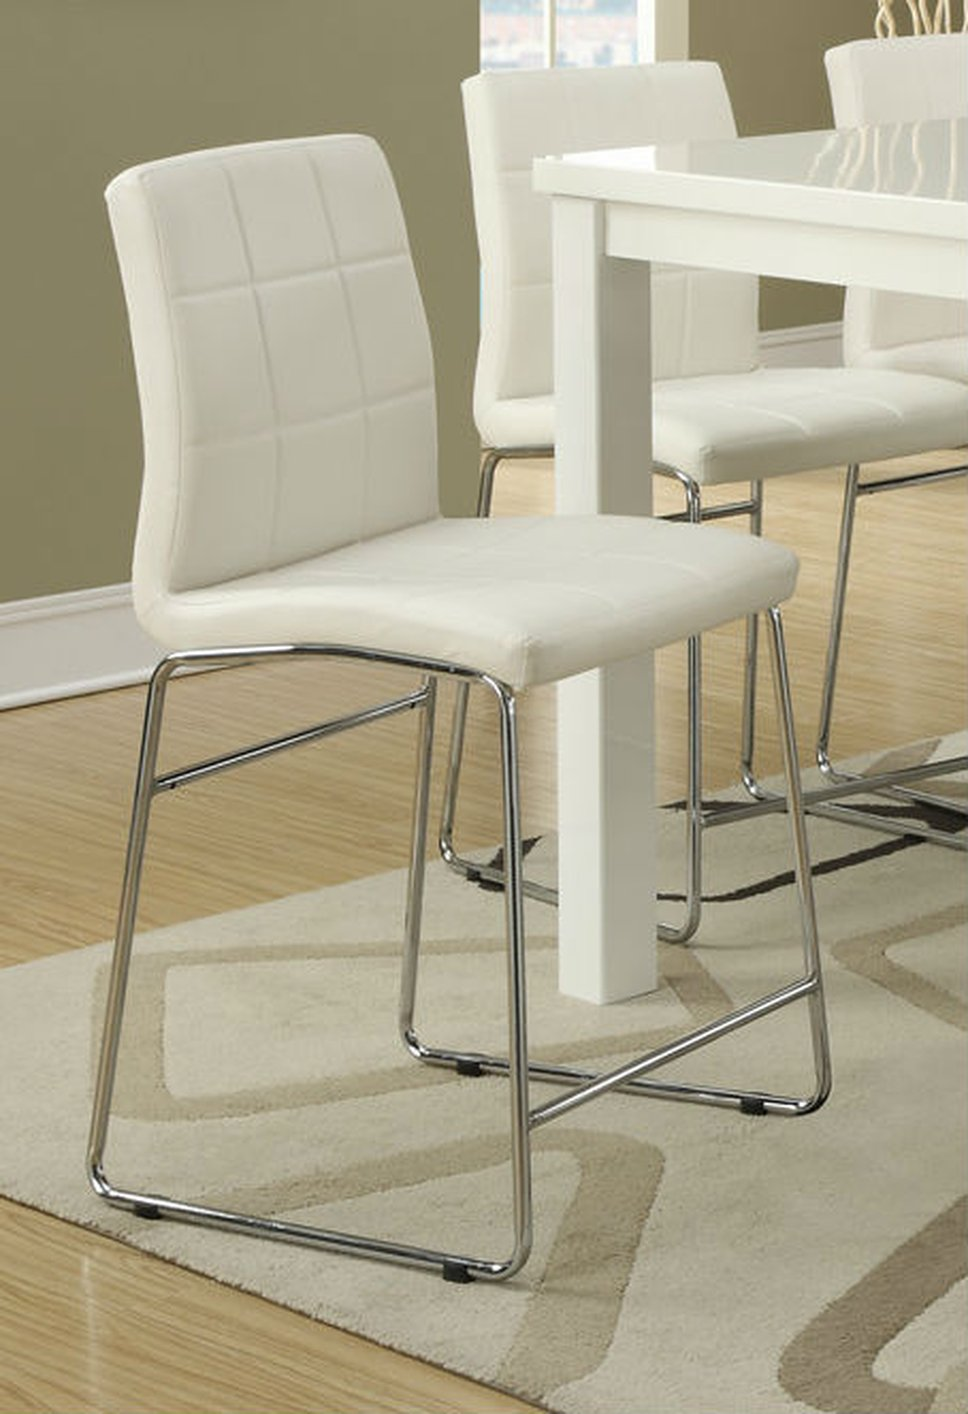 White Metal Dining Chair  StealASofa Furniture Outlet